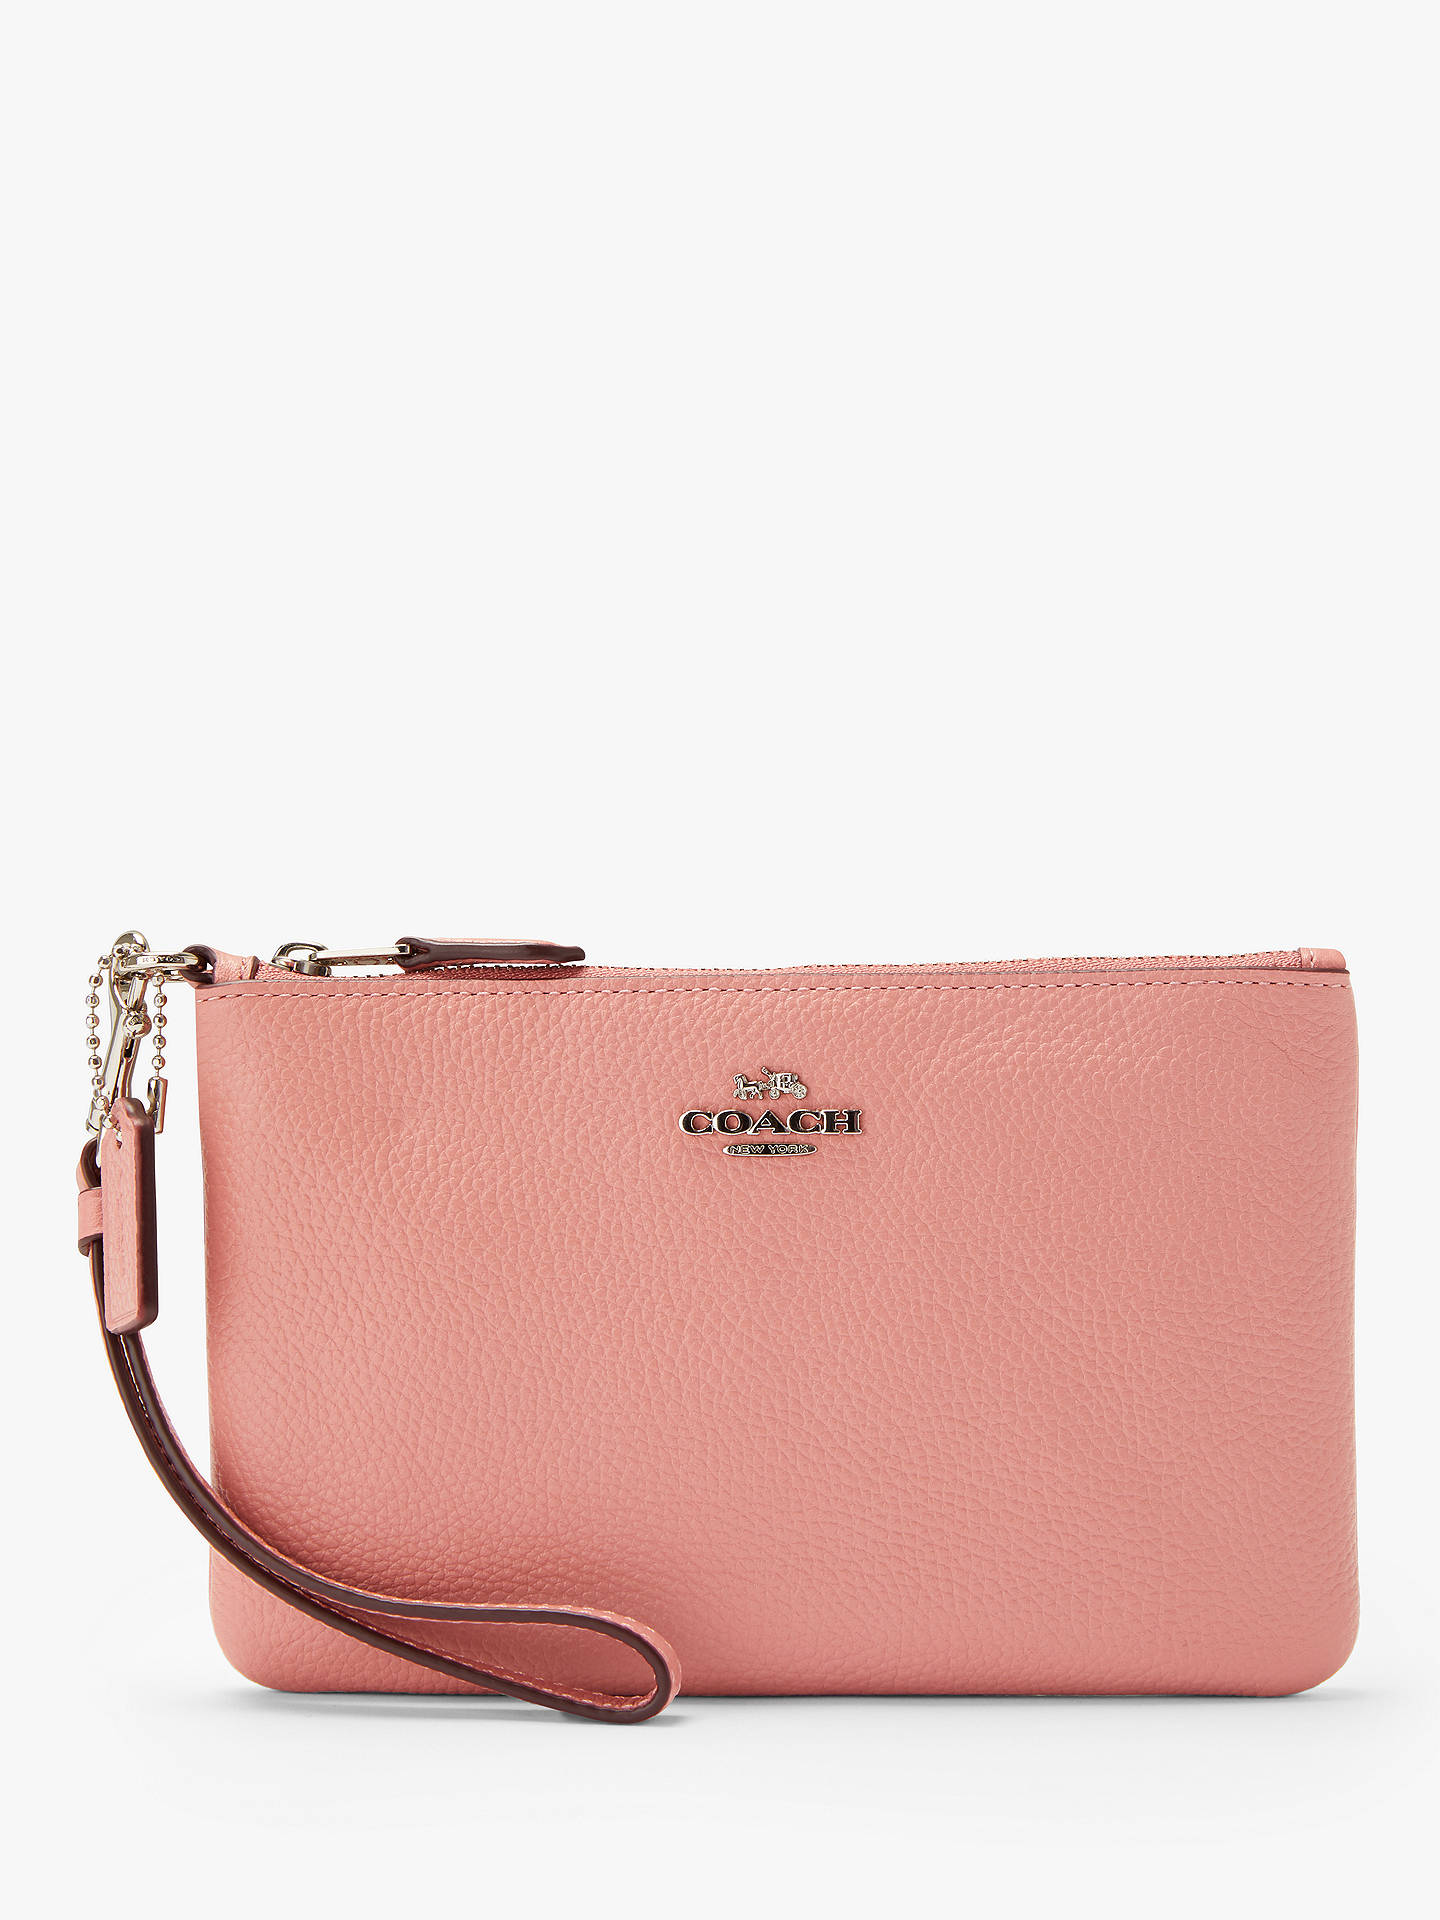 2fb2c161f87 BuyCoach Leather Wristlet Purse, Light Blush Online at johnlewis.com ...